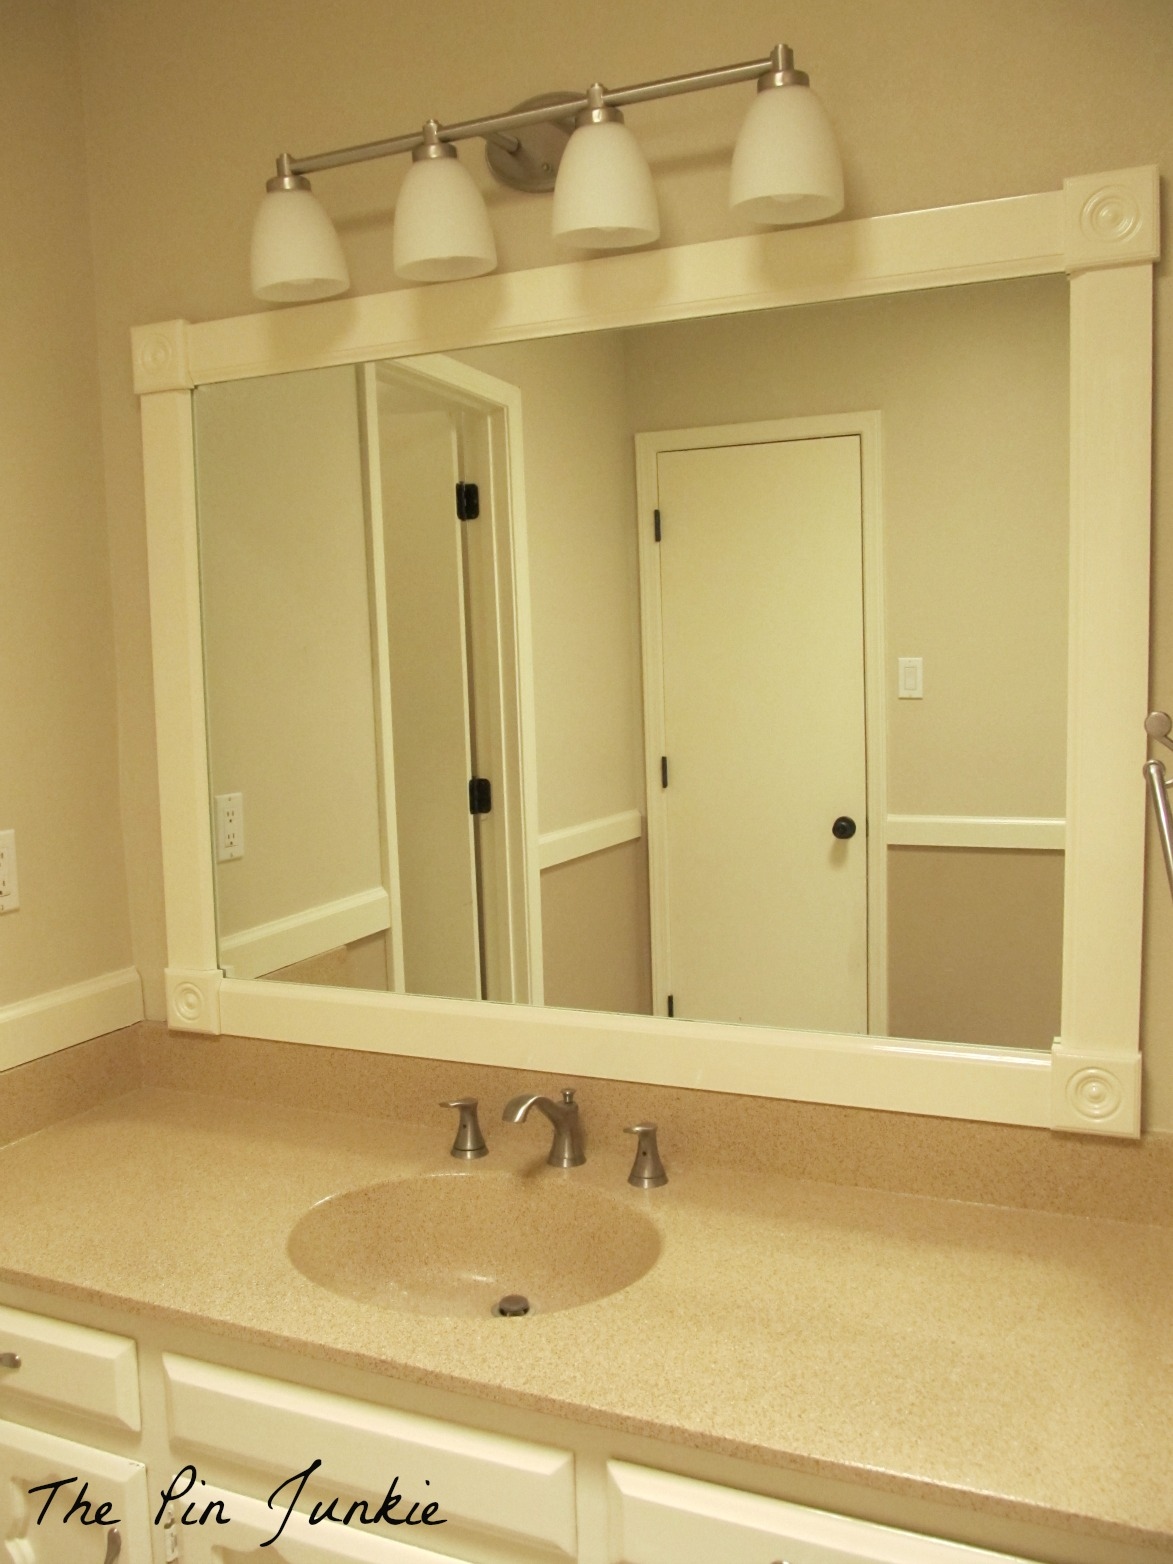 How to frame bathroom mirrors - How To Frame Bathroom Mirror